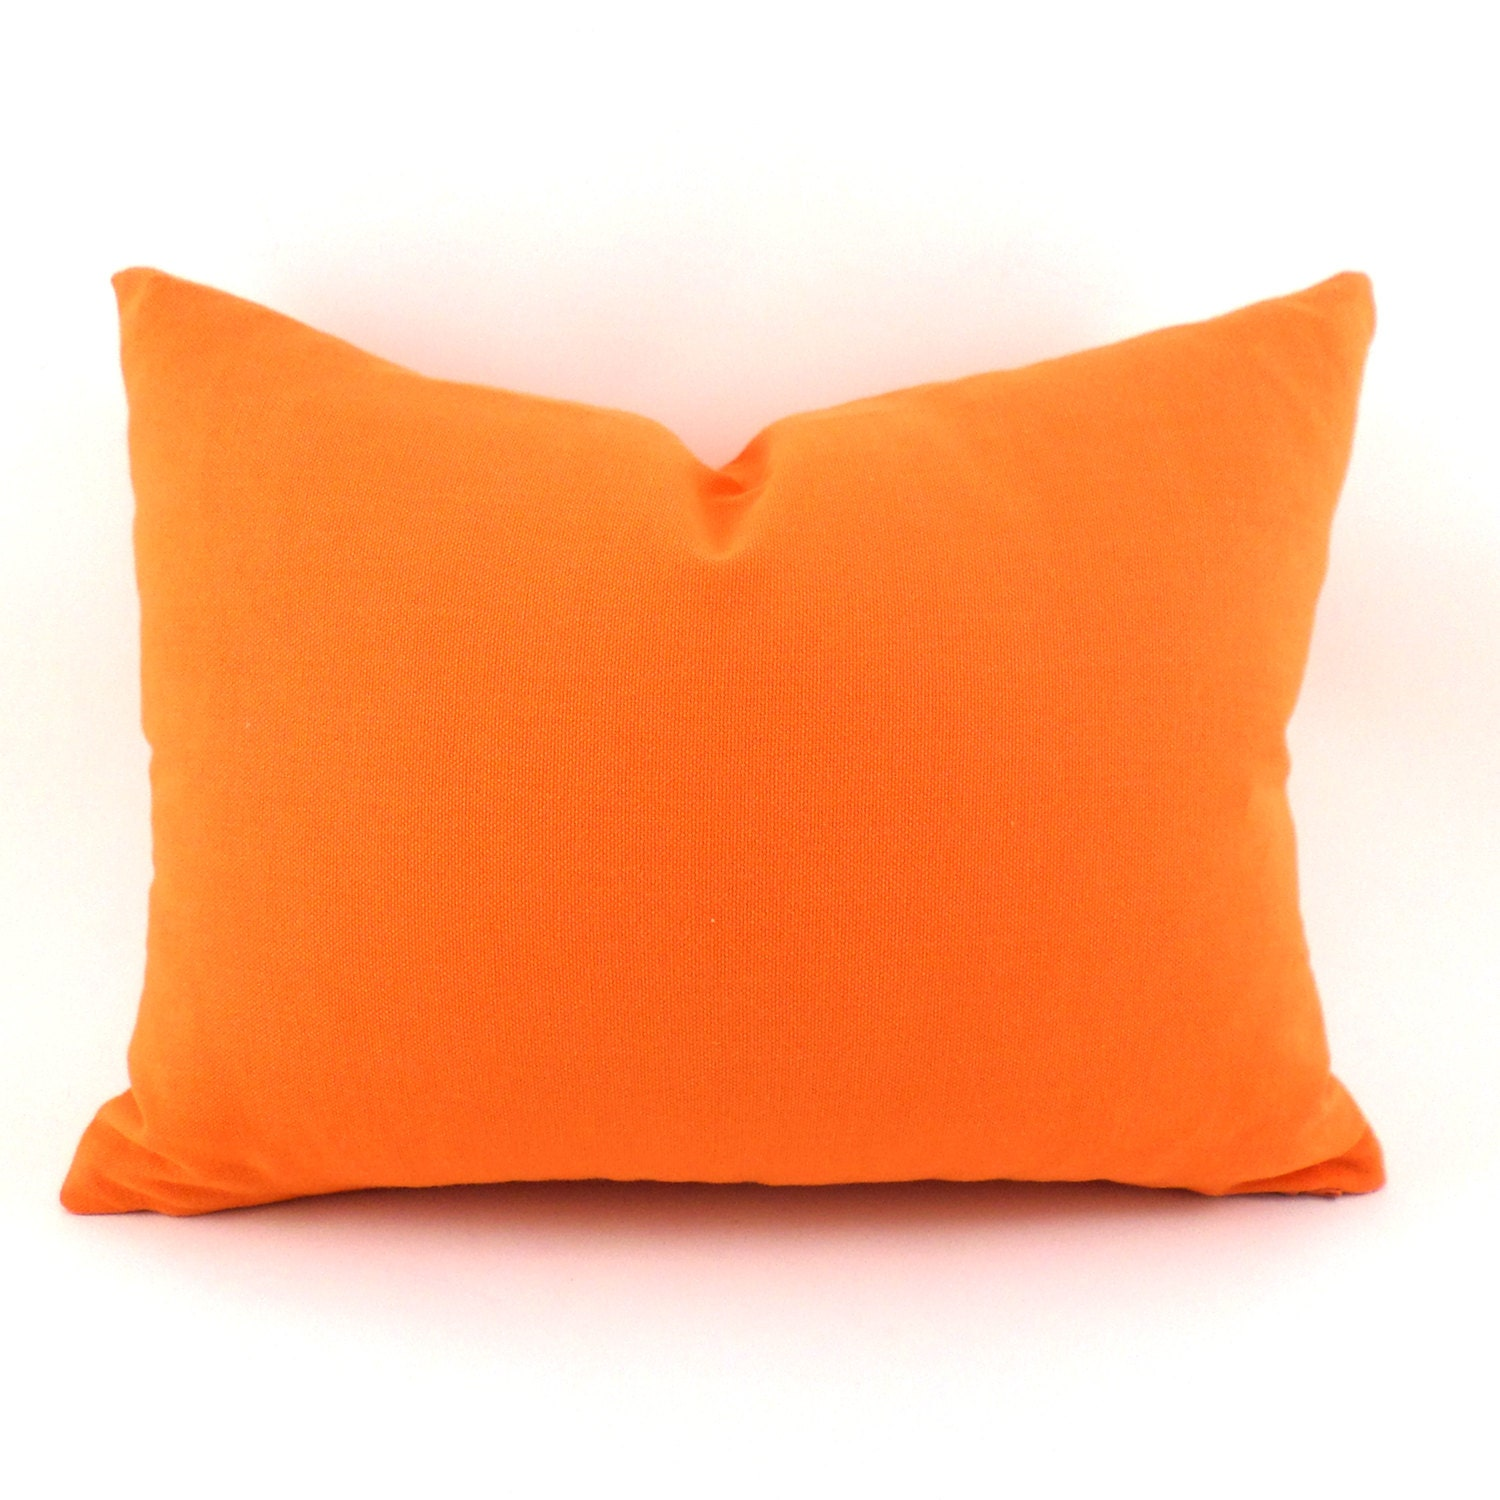 Decorative Orange Lumbar Pillow : Orange Lumbar Pillow Cover ANY SIZE Decorative Pillow Cover